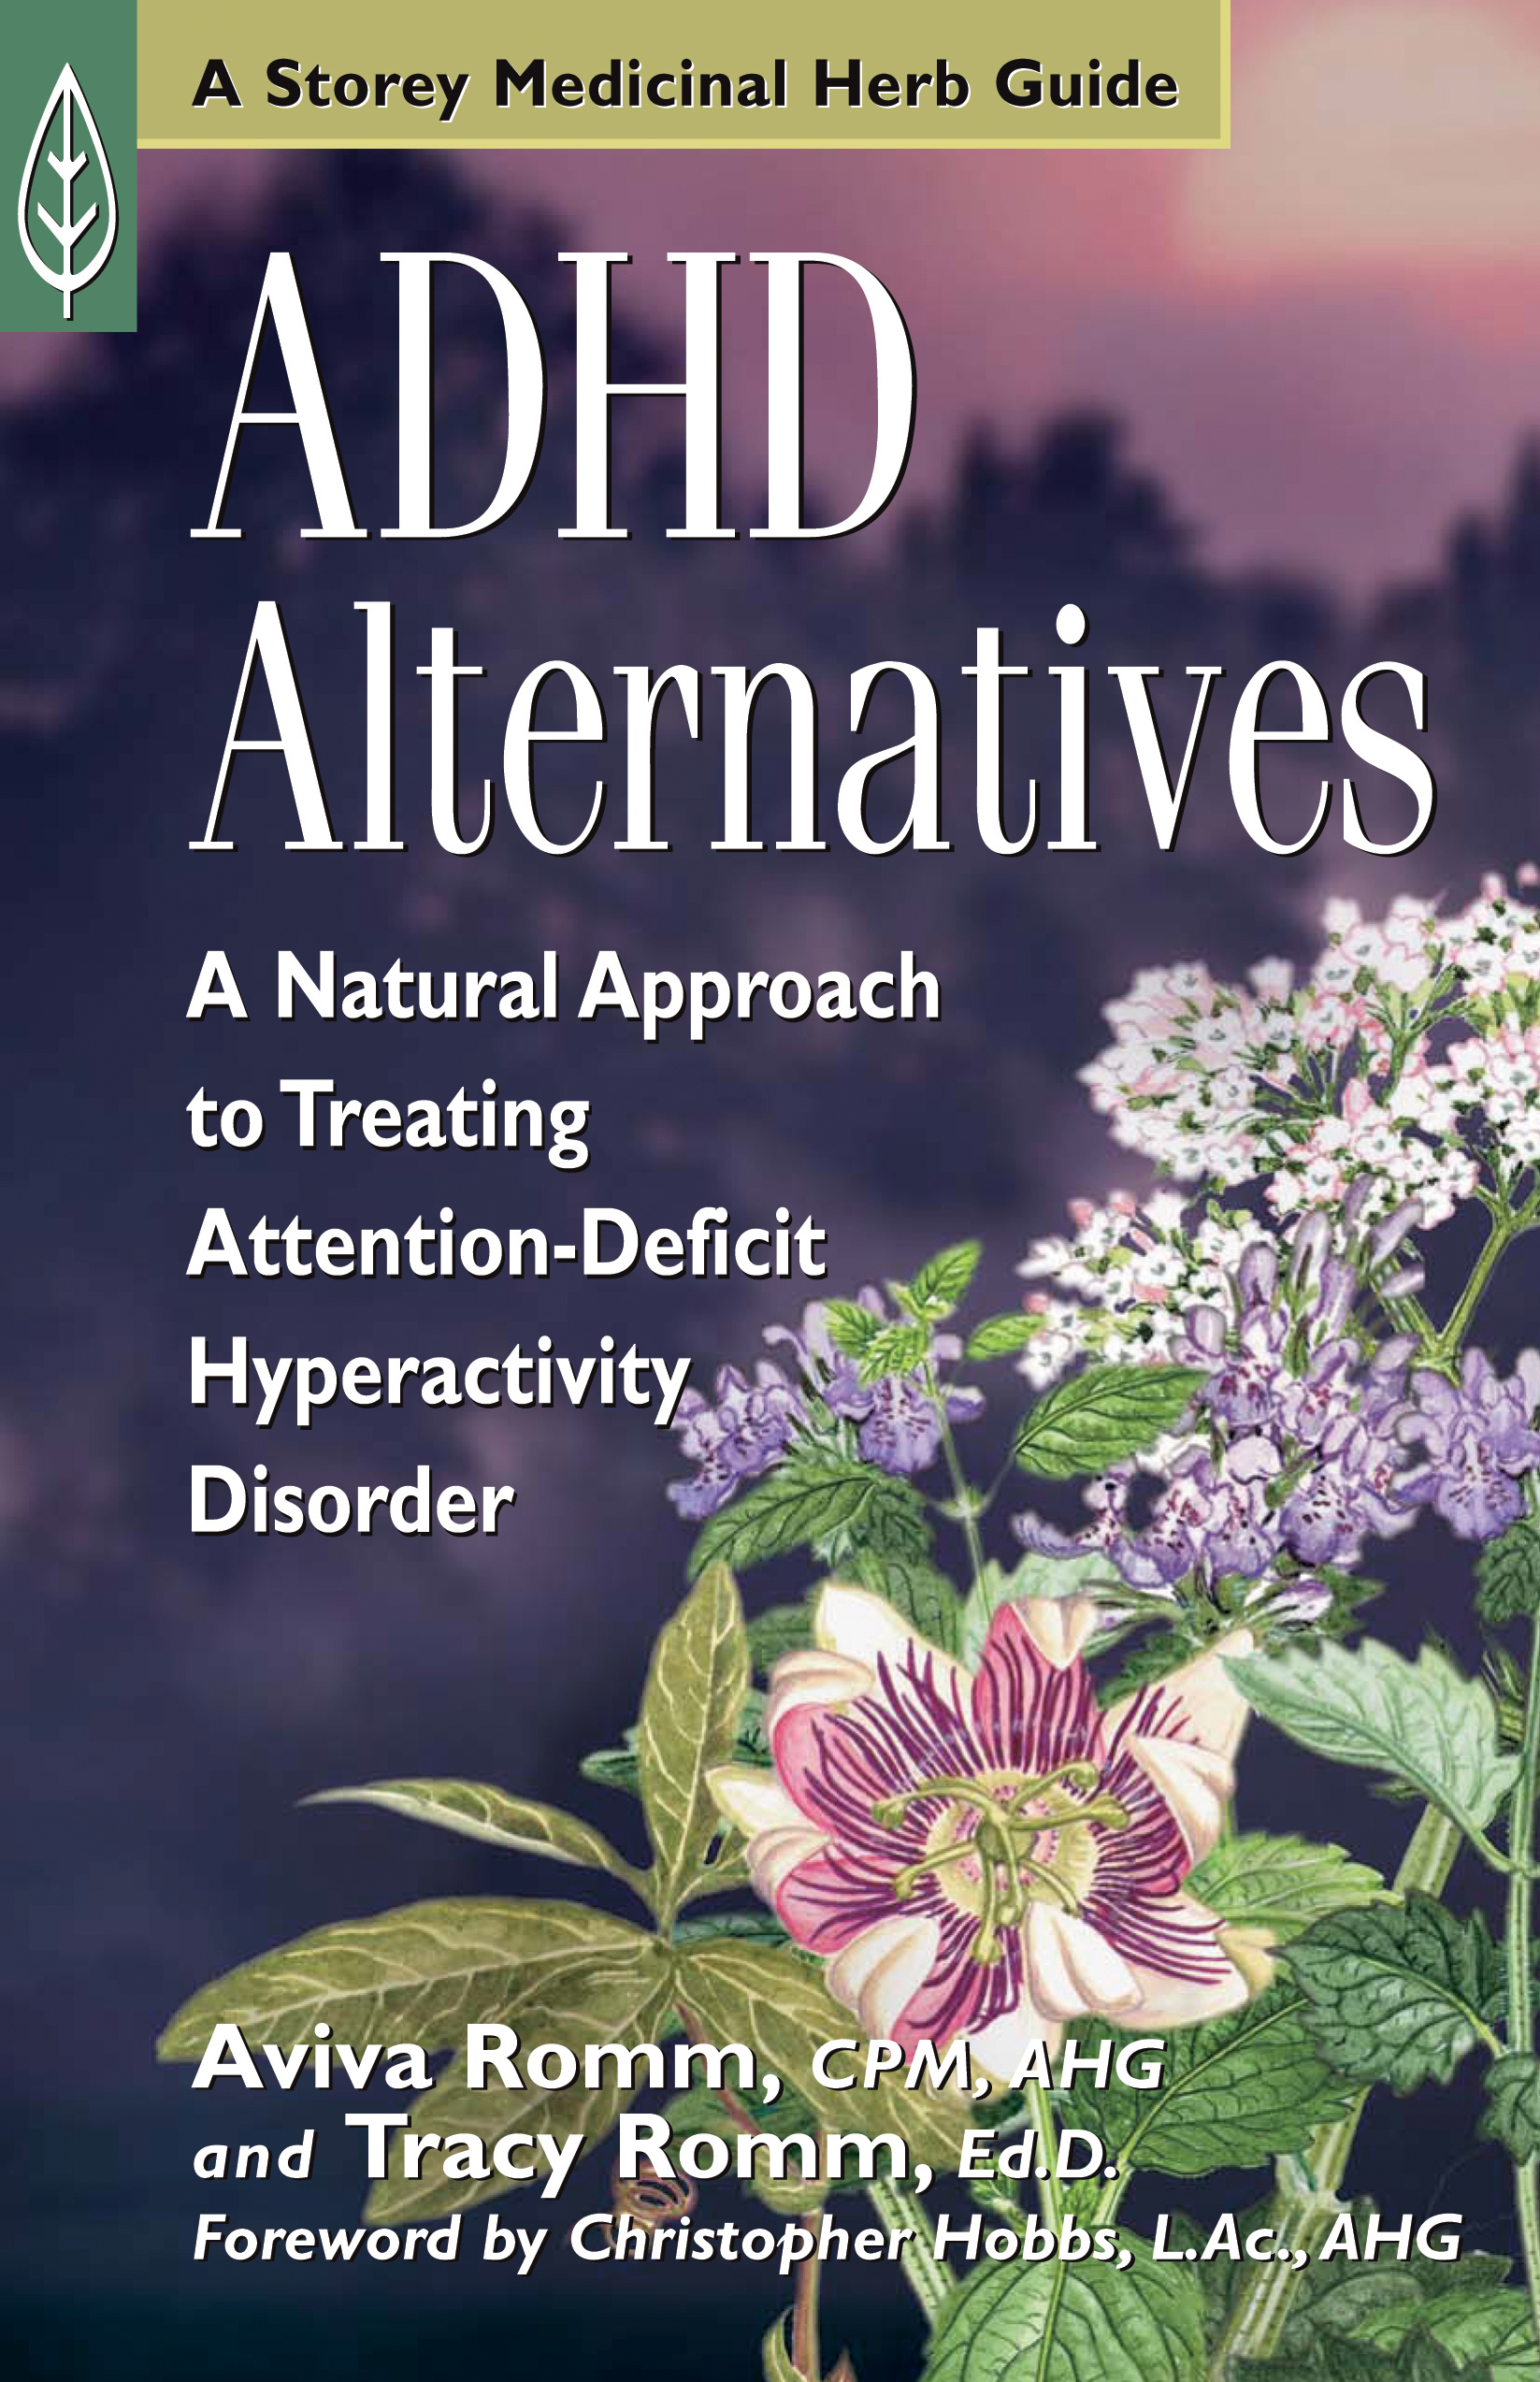 ADHD Alternatives A Natural Approach to Treating Attention Deficit Hyperactivity Disorder - Aviva J. Romm